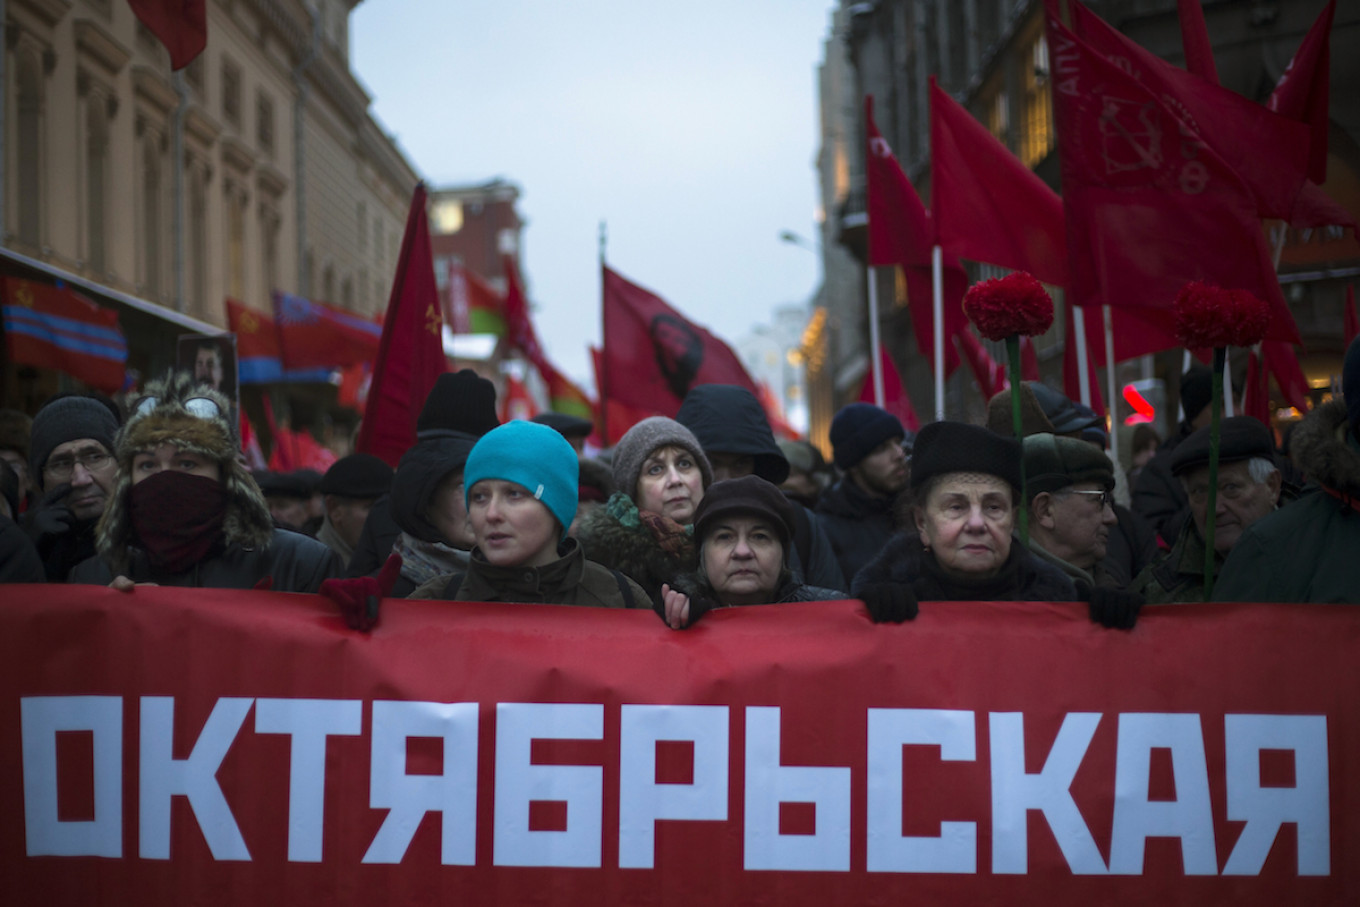 Communist party supporters carry a banner that reads 'the Great October's Socialistic Revolution' during a rally  AP Photo/Alexander Zemlianichenko